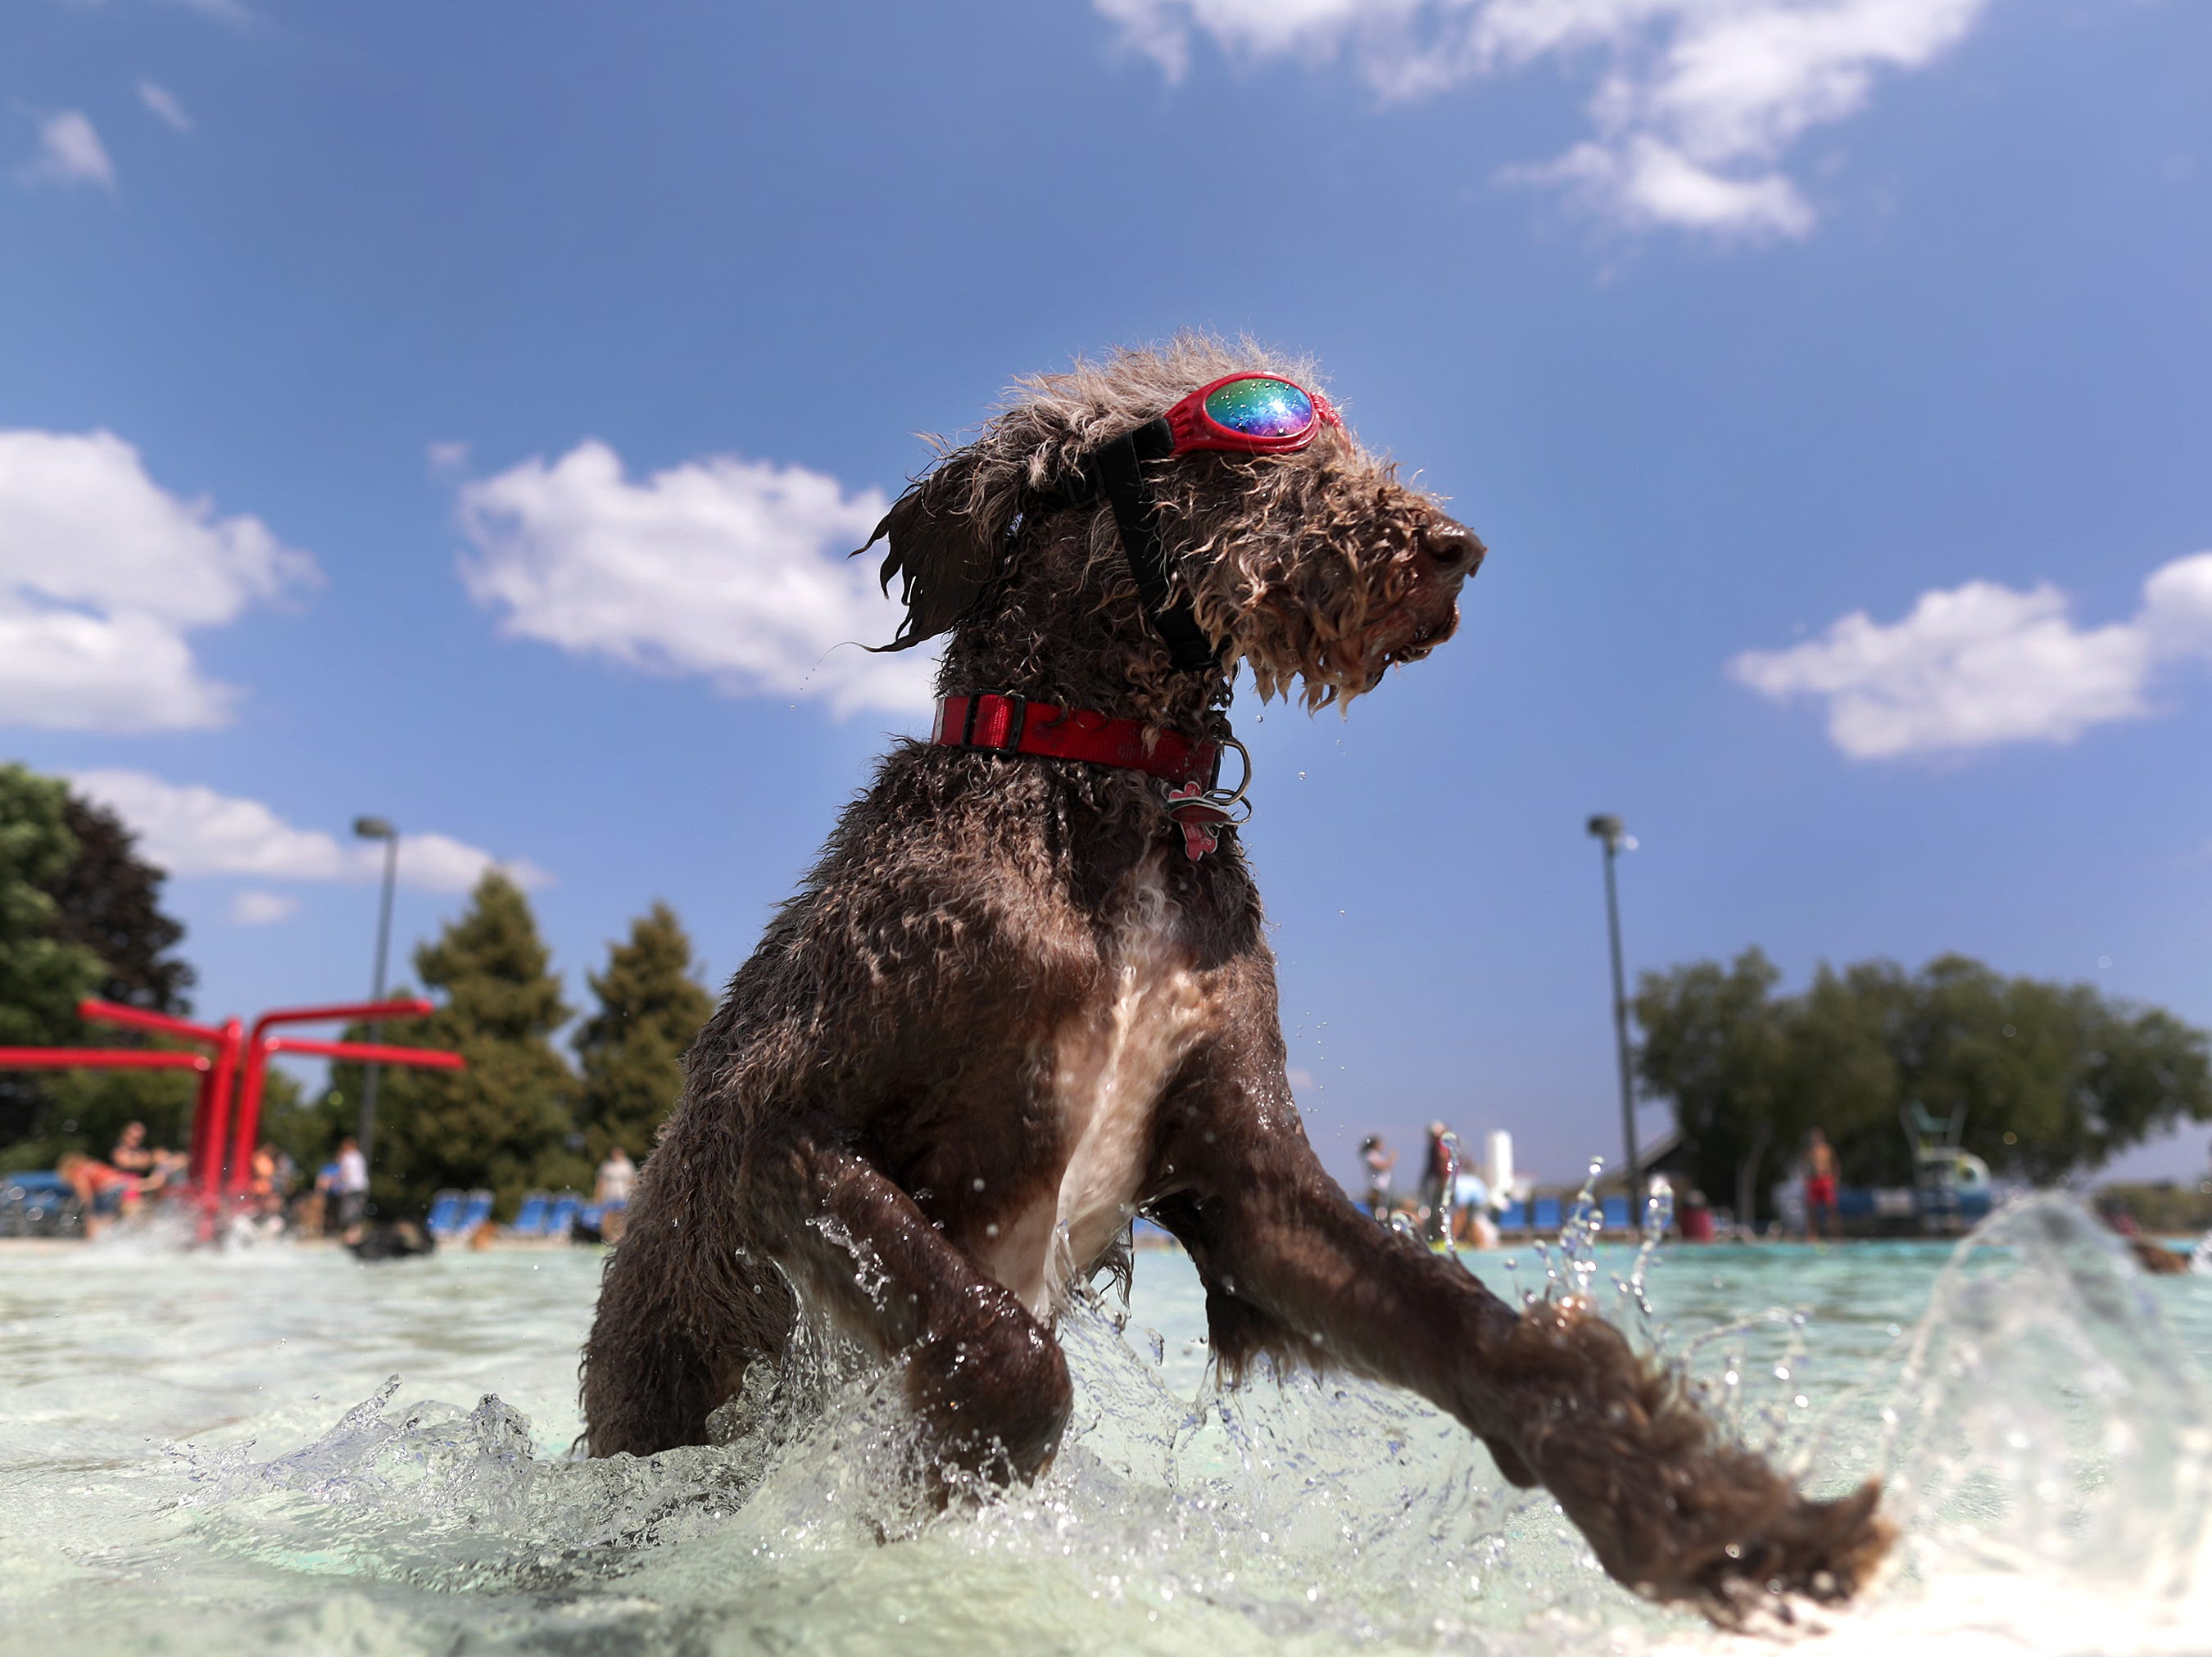 Drool in the Pool at Neenah City Pool on Thursday, August 23, 2018, in Neenah, Wis. Drool in the Pool is an annual event that invites dog owners to bring their pets for a canine only swim.